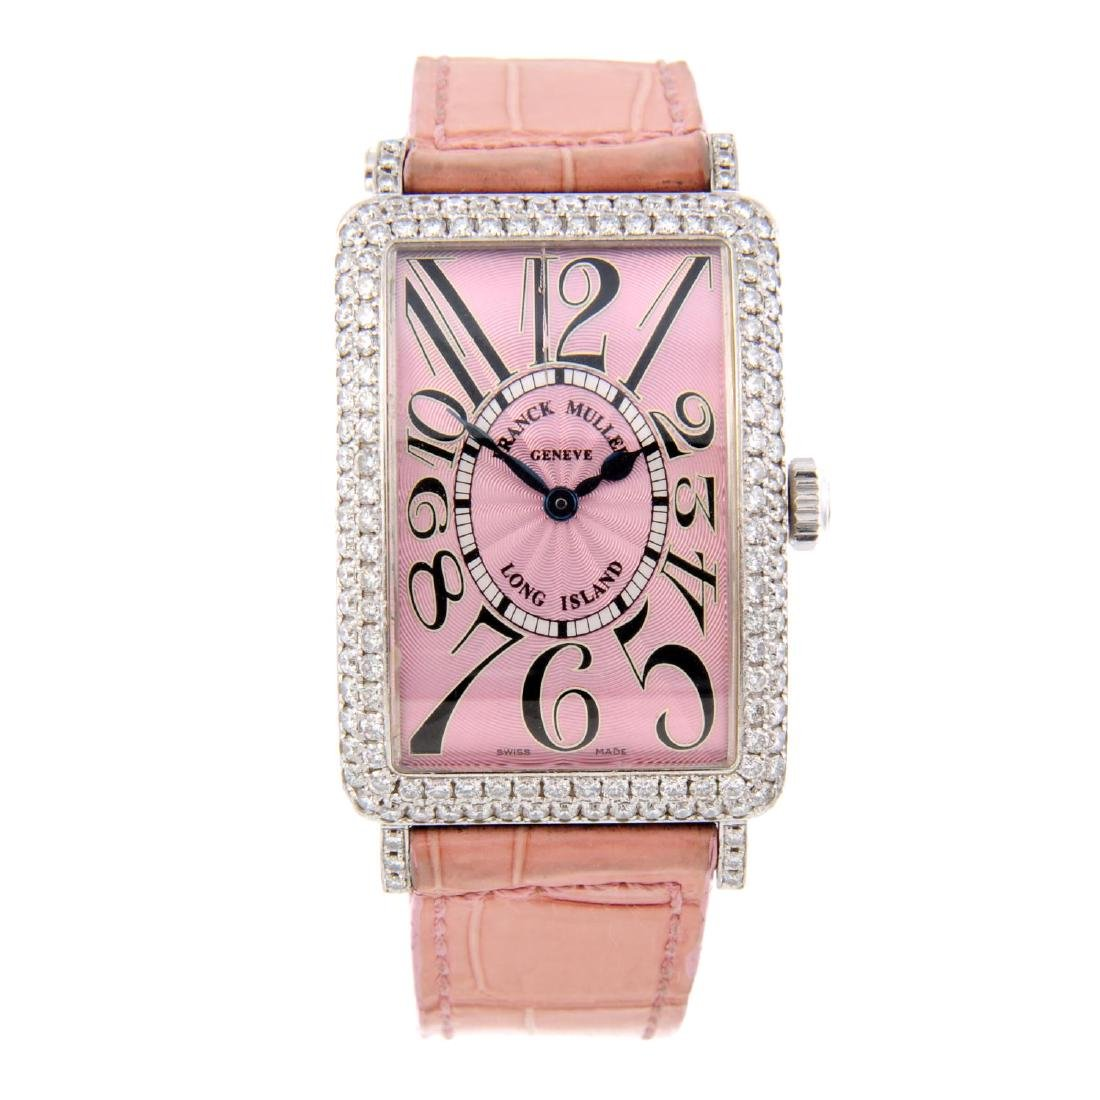 FRANCK MULLER - a lady's Long Island wrist watch. 18ct